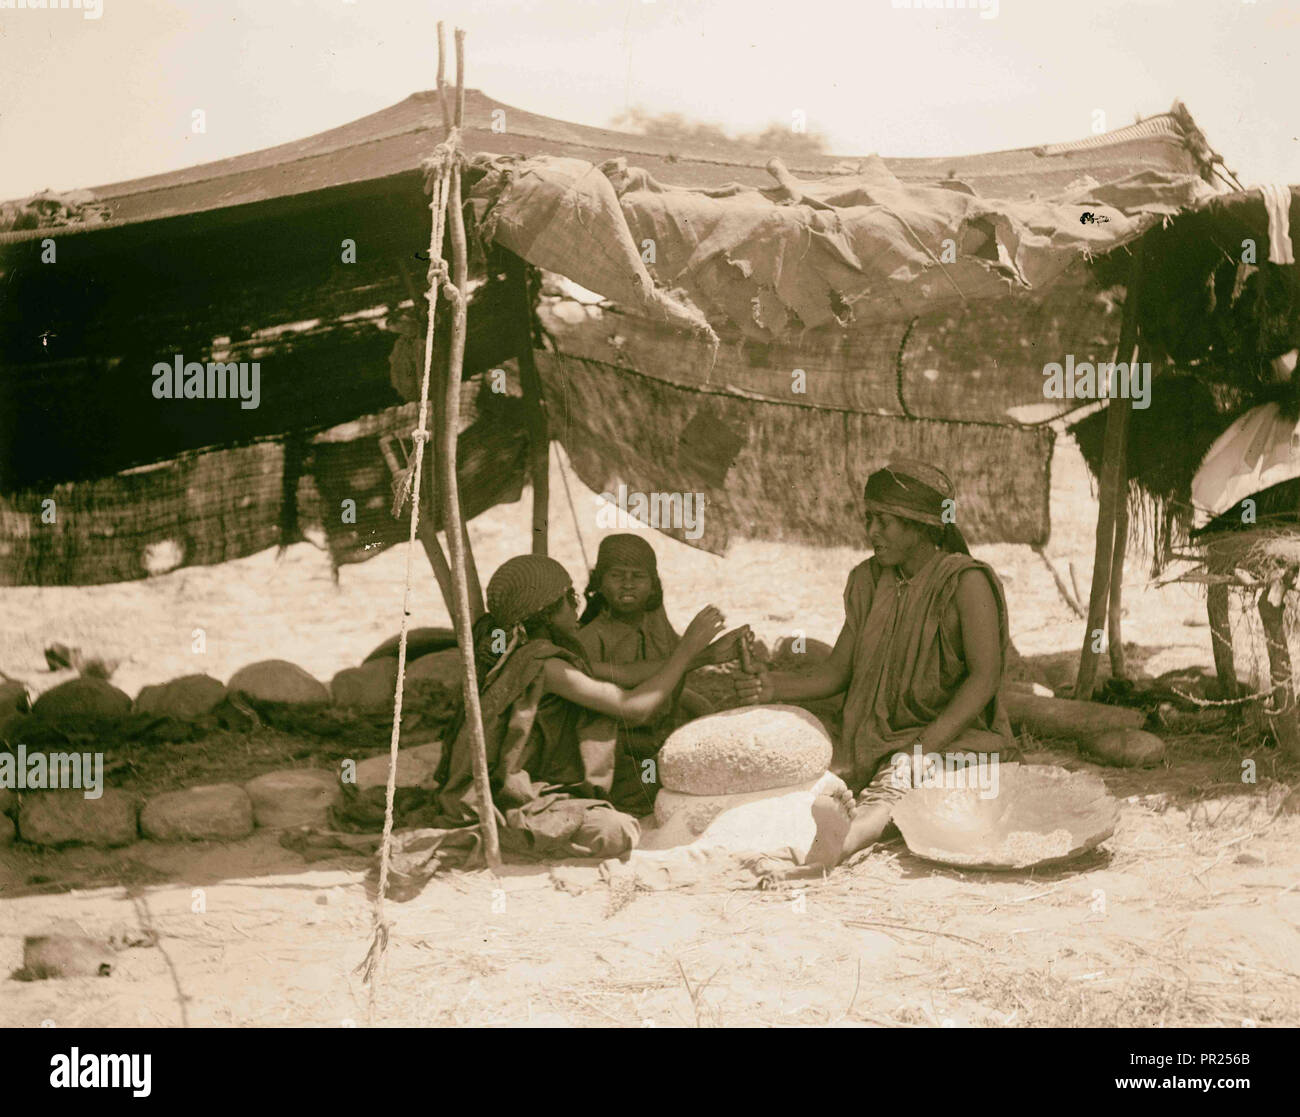 Bedouin women working primitive grainmill. 1898, Middle East, Israel and/or Palestine - Stock Image